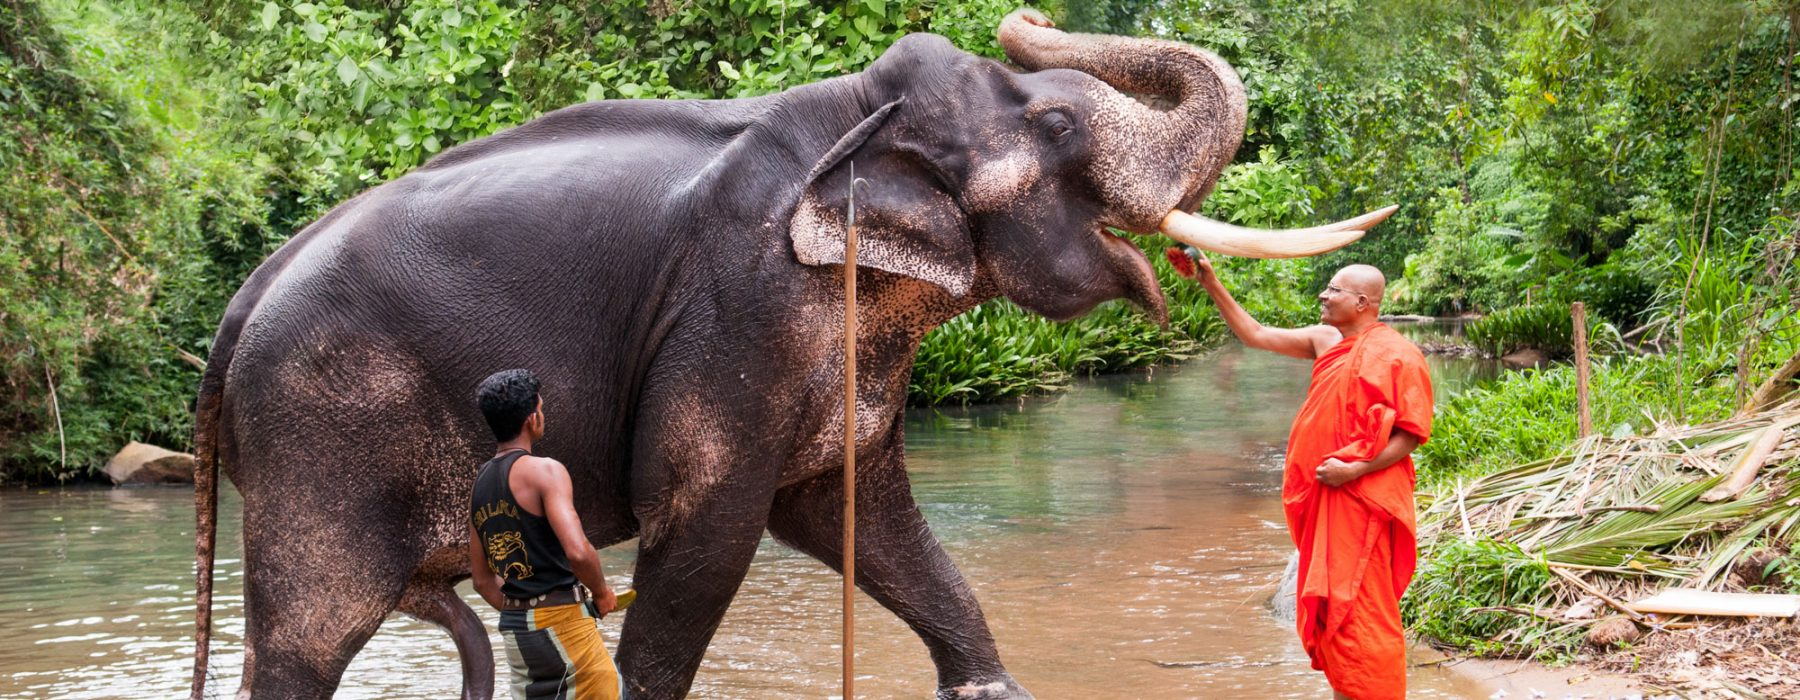 Elephant nature park: volunteer abroad - work at an elephant sanctuary